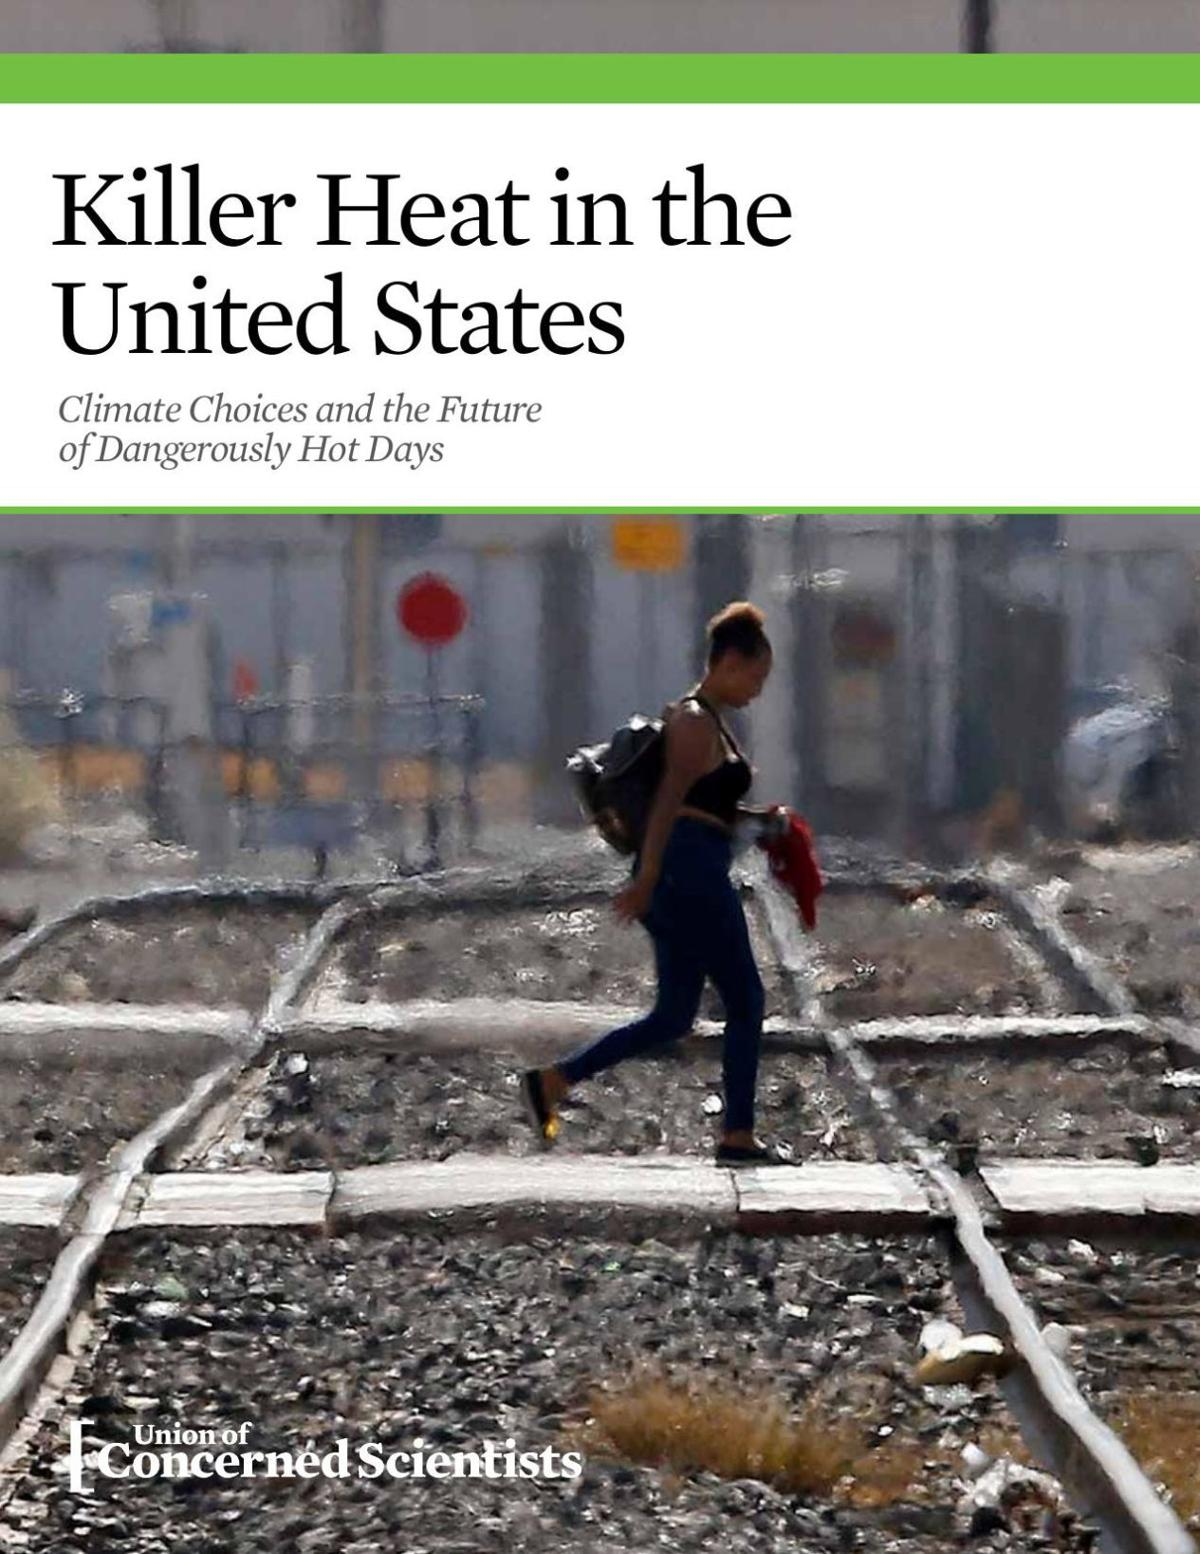 Killer Heat in the United States Climate Choices and the Future of Dangerously Hot Days